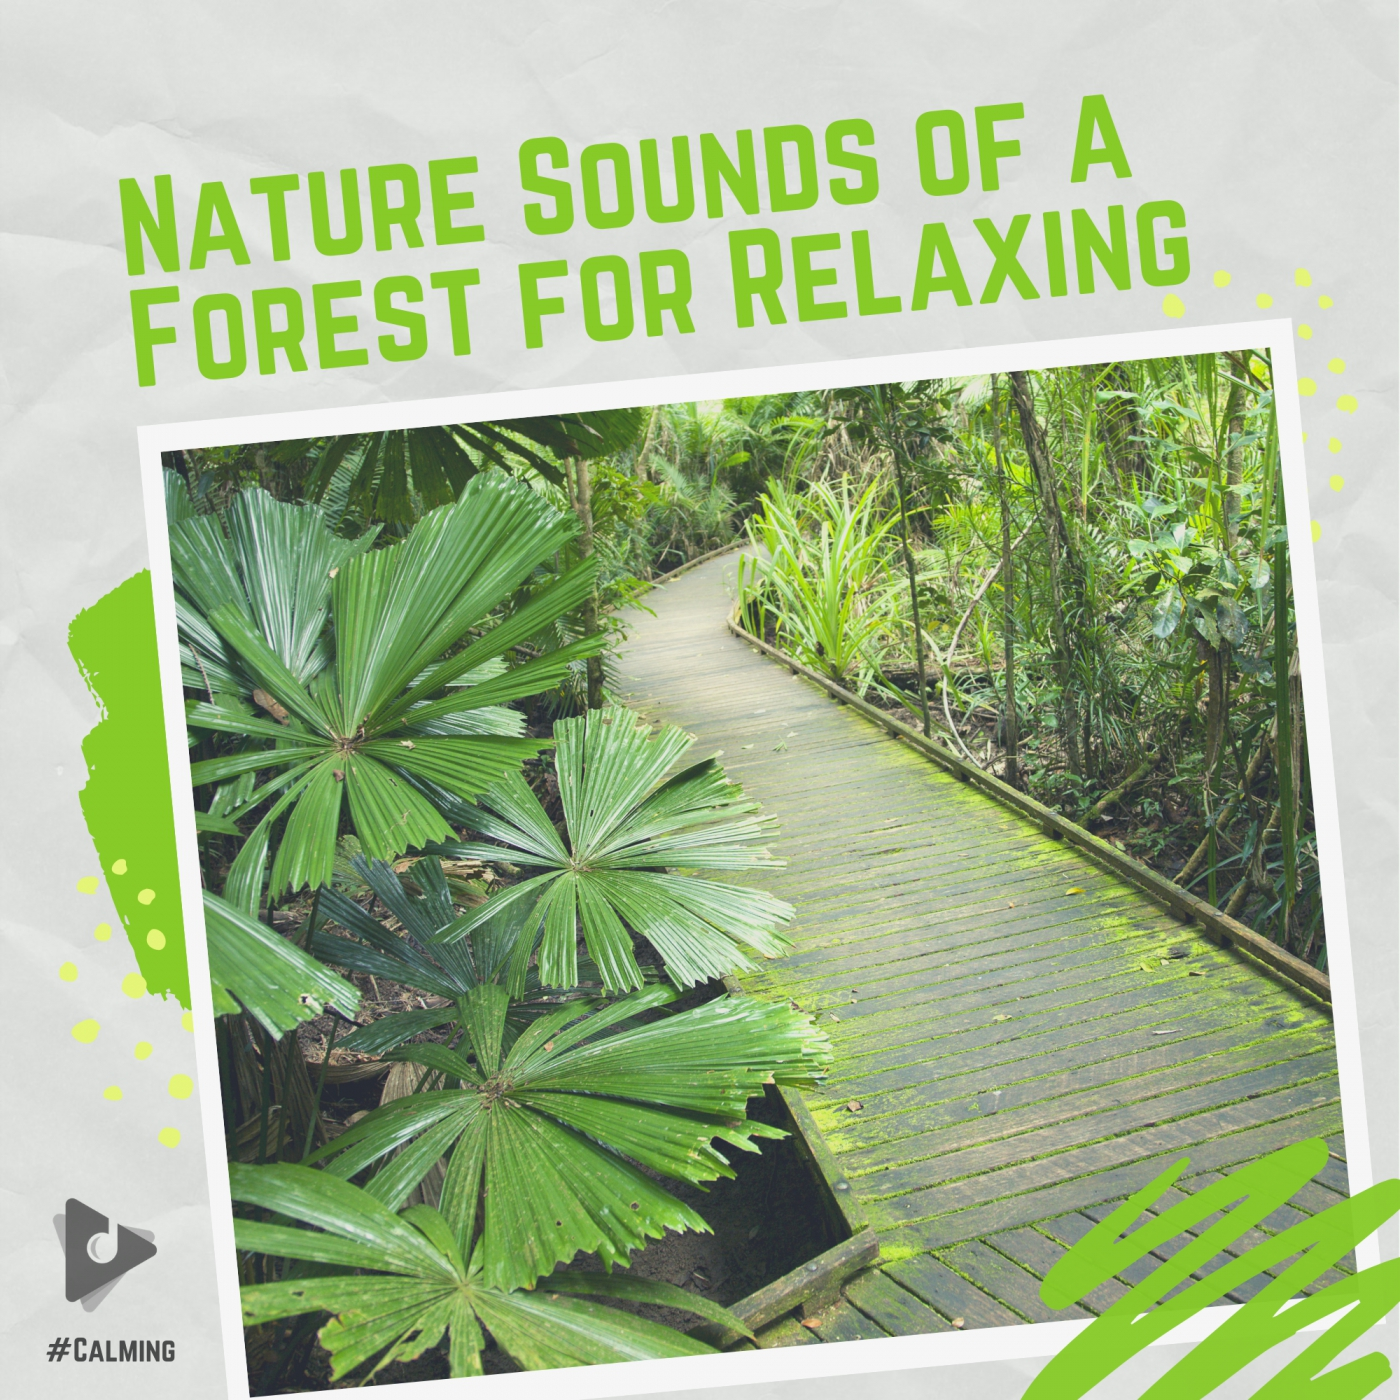 Nature Sounds of a Forest for Relaxing